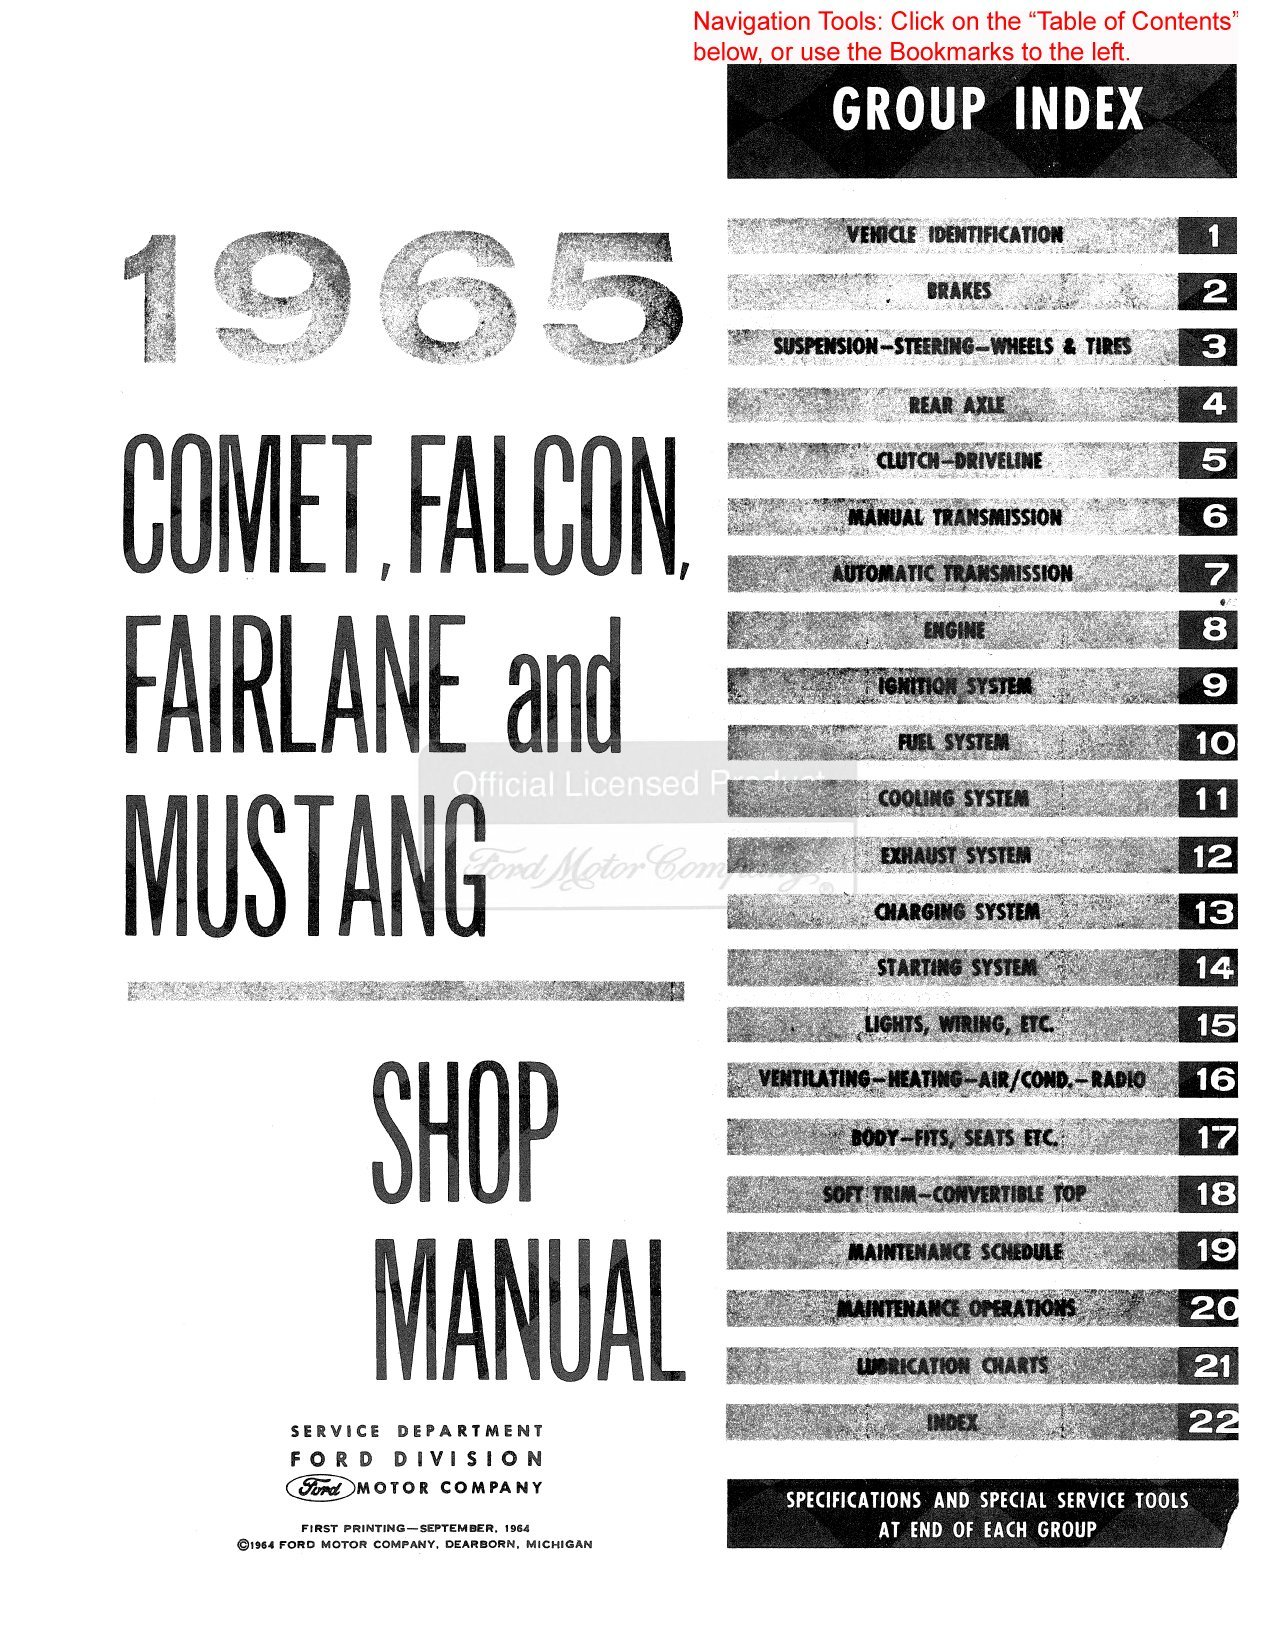 1965 Comet, Falcon, Fairlane and Mustang: Shop Manual: Amazon.es: Ford Motor Co: Libros